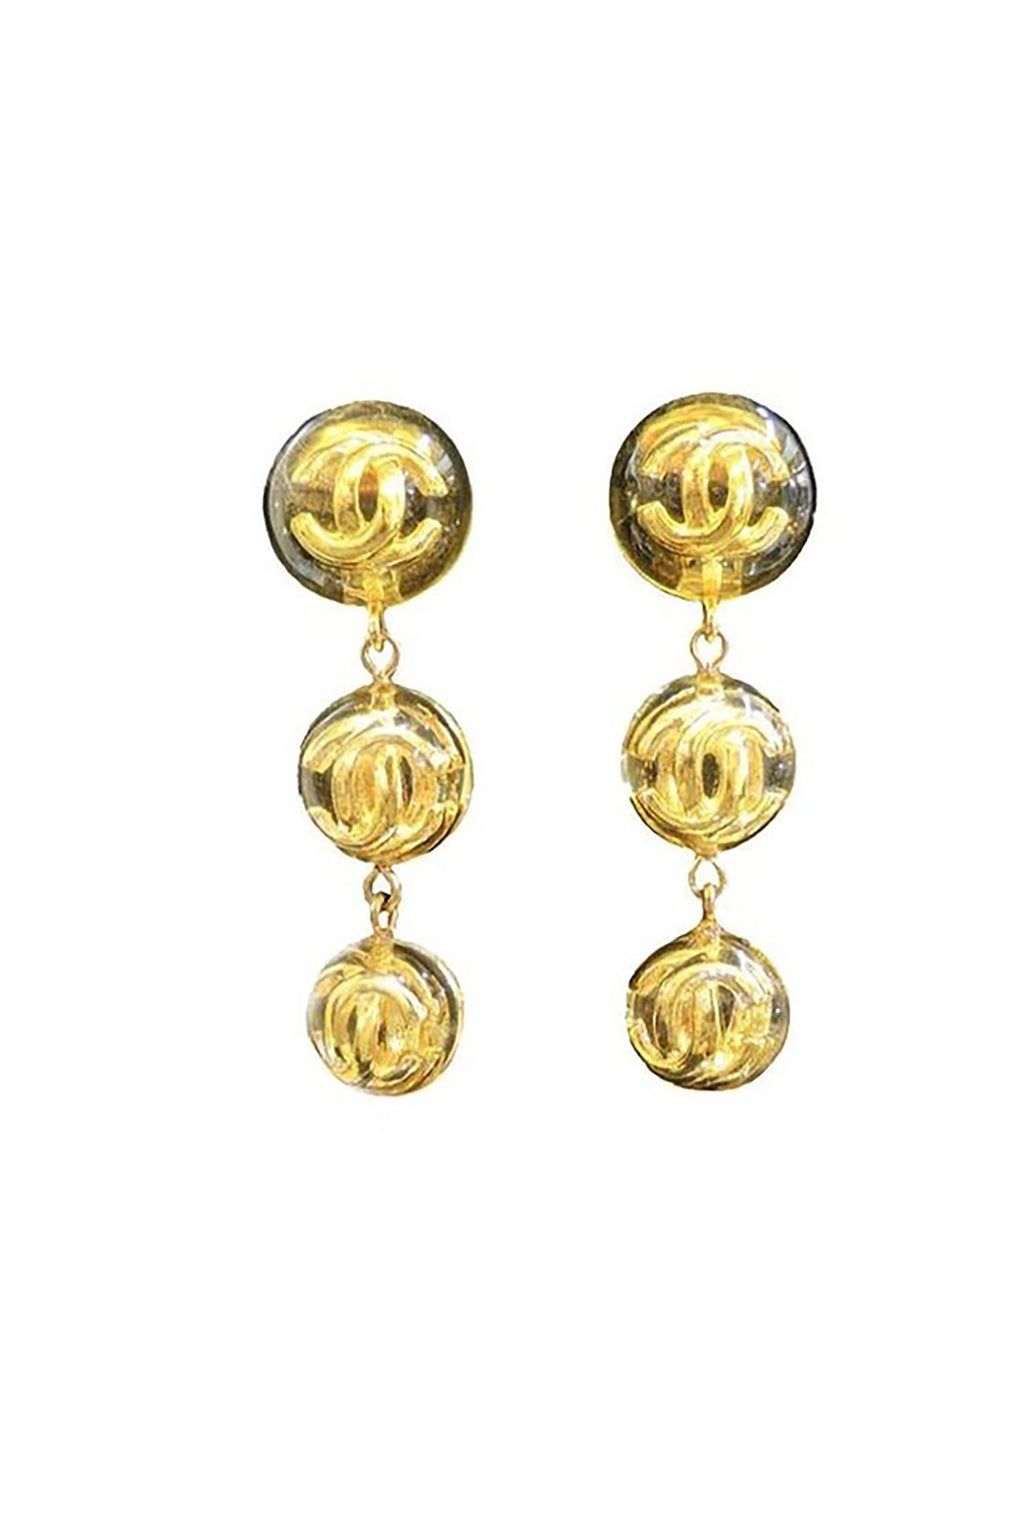 Famous Vintage Signed Chanel Season 25'CC' Logo Earrings